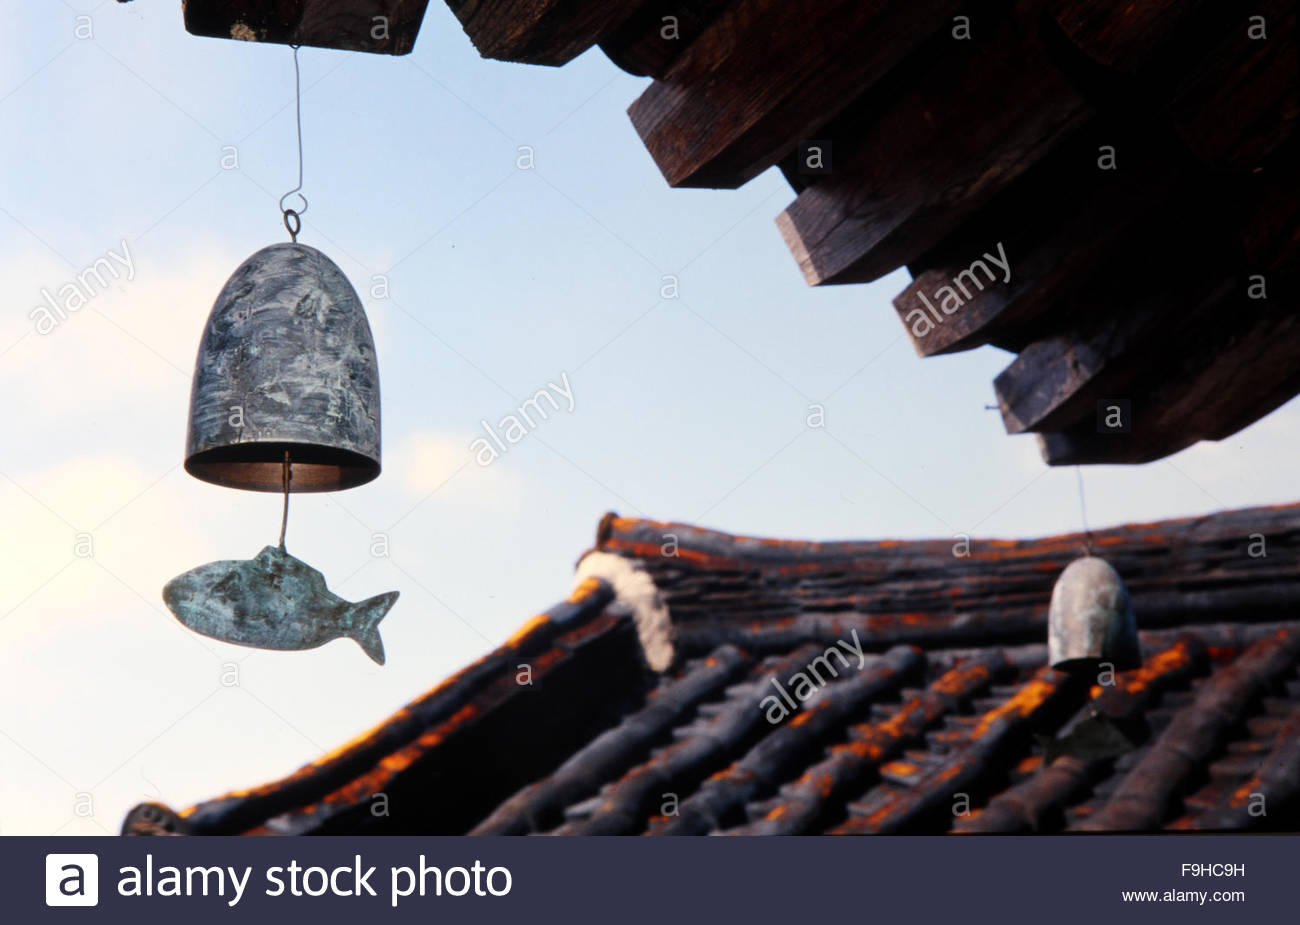 wind chime hanging under the eaves - Stock Image